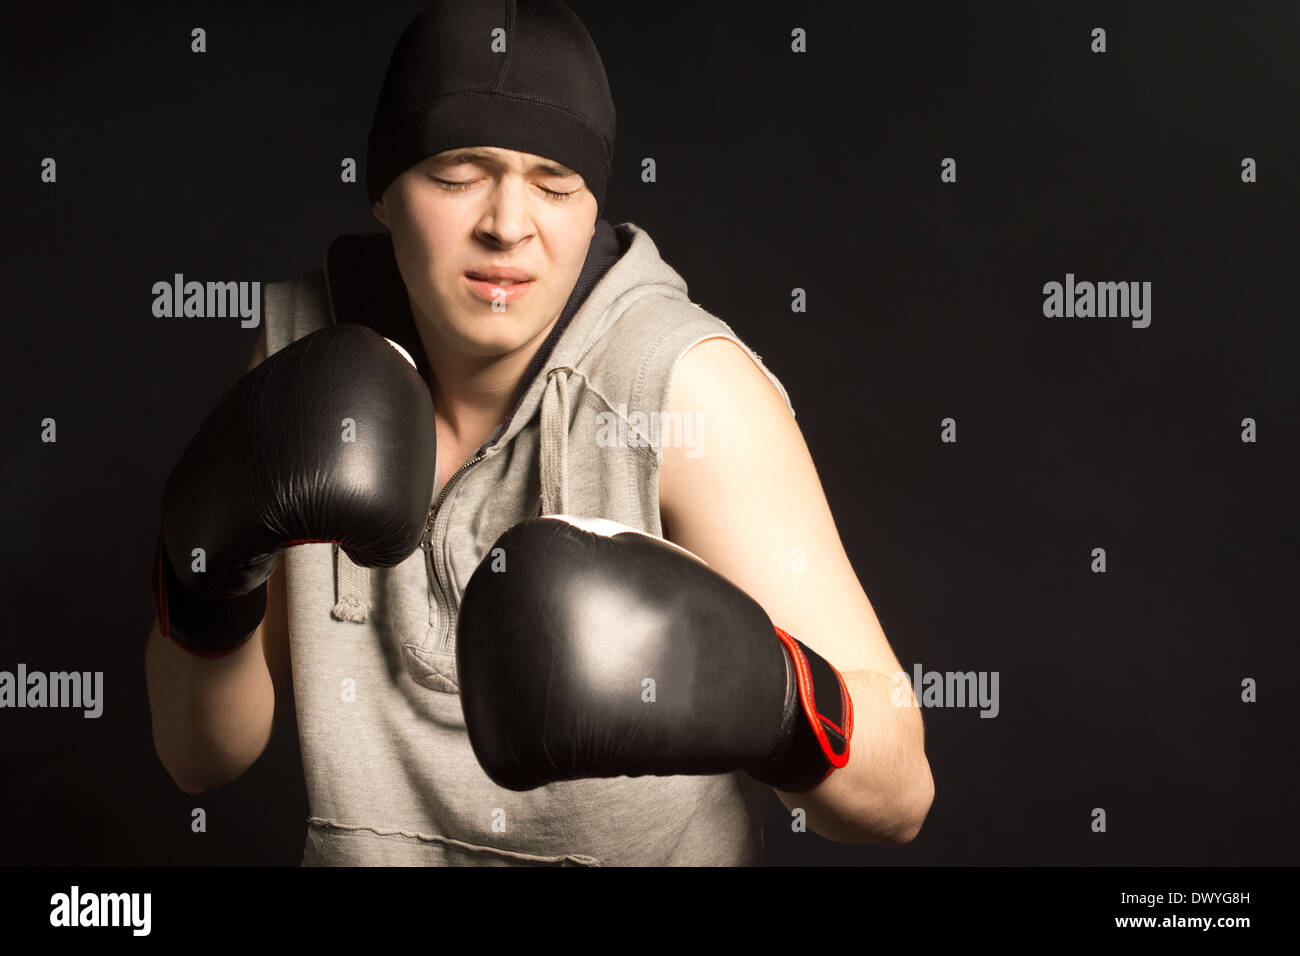 Young boxer grimacing in pain as he stands with his gloved fists raised in the darkness - Stock Image